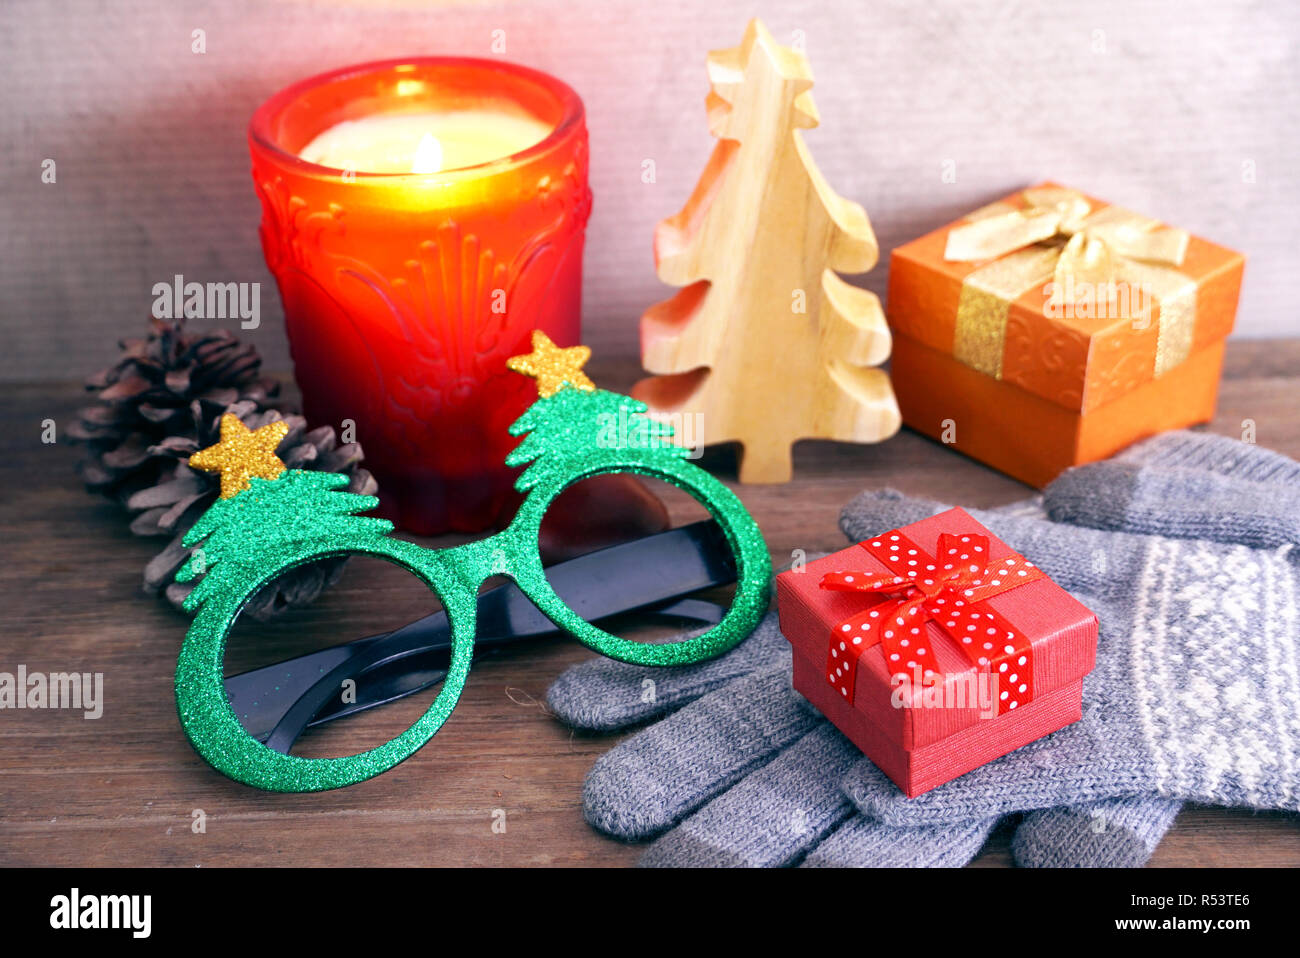 Red gift box on gray gloves with decorate objecton the table for chriatmas theme - Stock Image